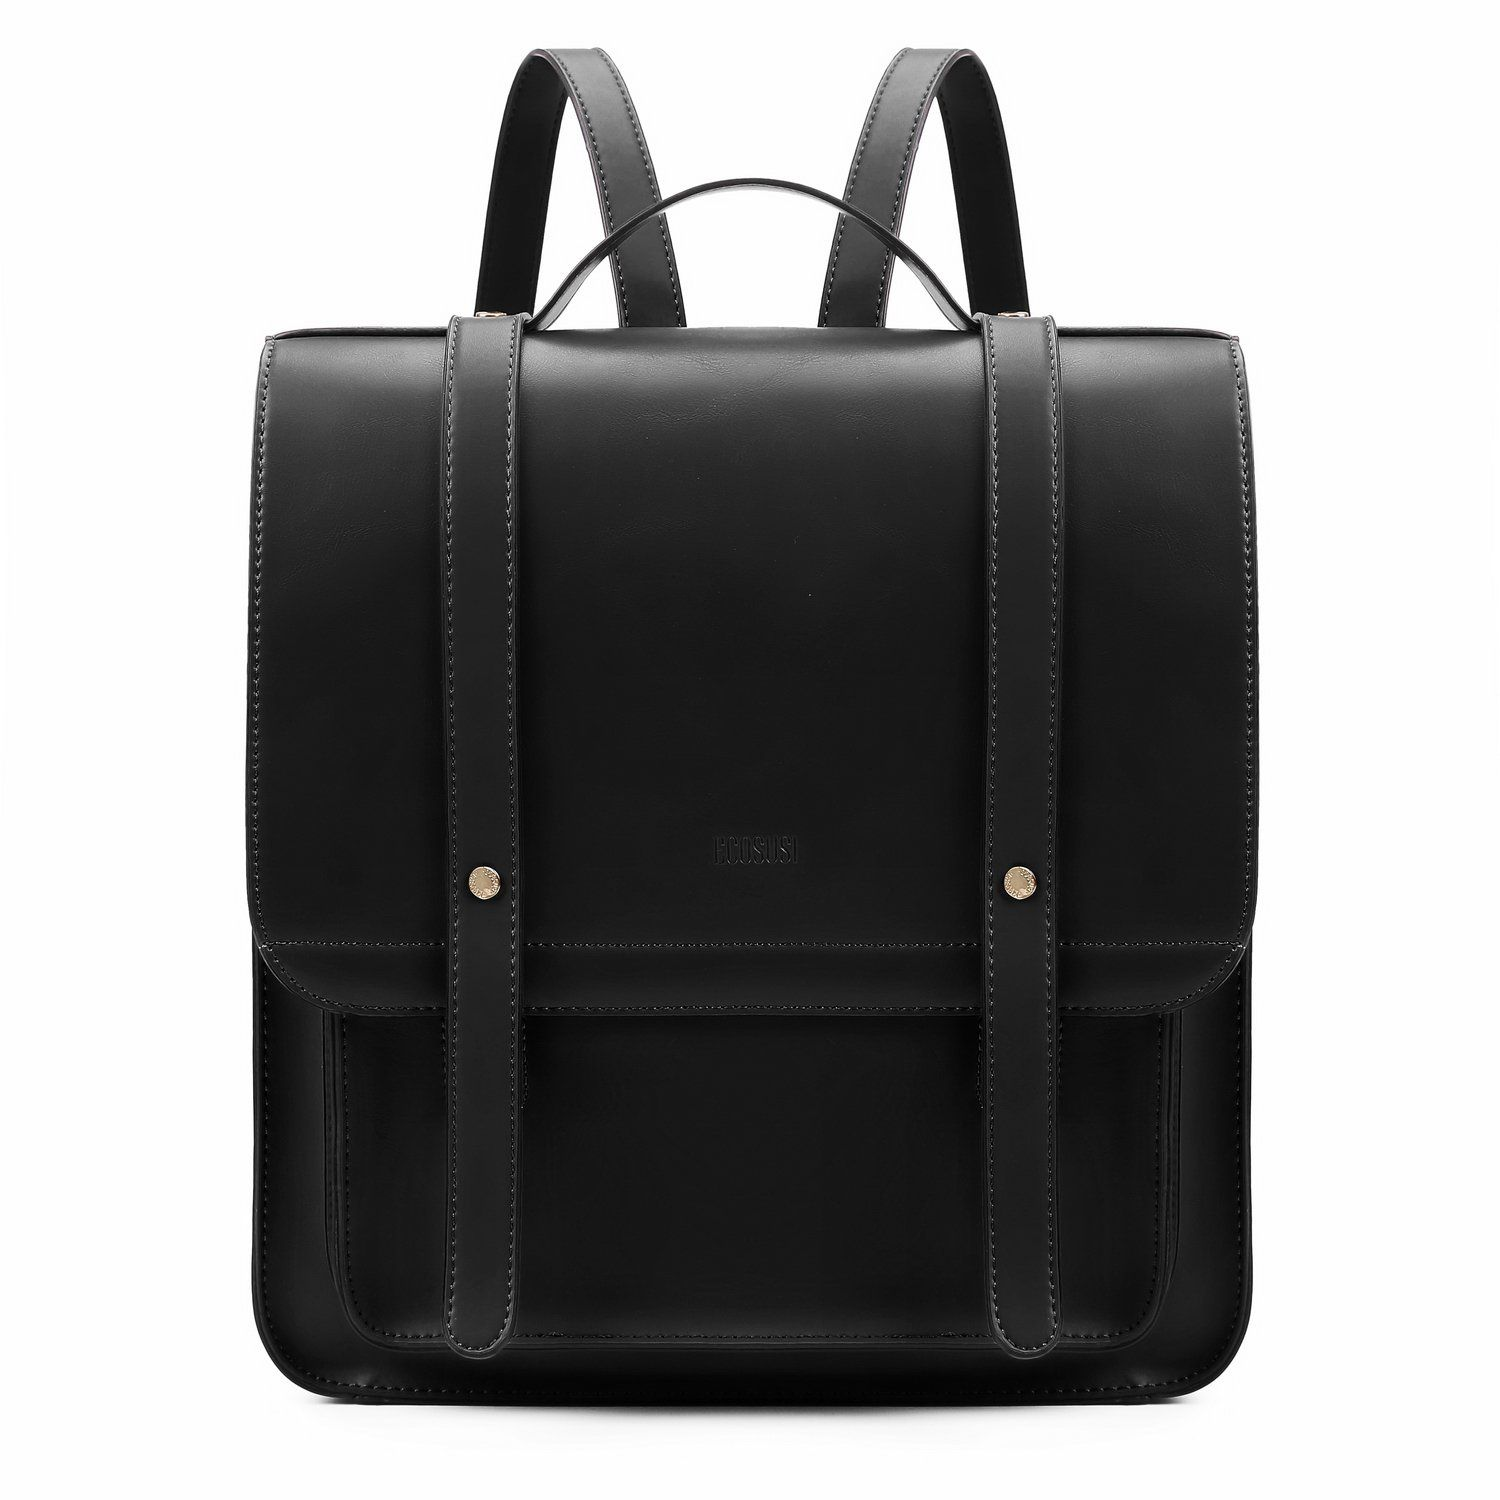 Women s Briefcase Laptop Backpack PU Leather Satchel Messenger Bag Fits up  to 14.7 Inch Laptops with Small Purse 259952dd6c5ce